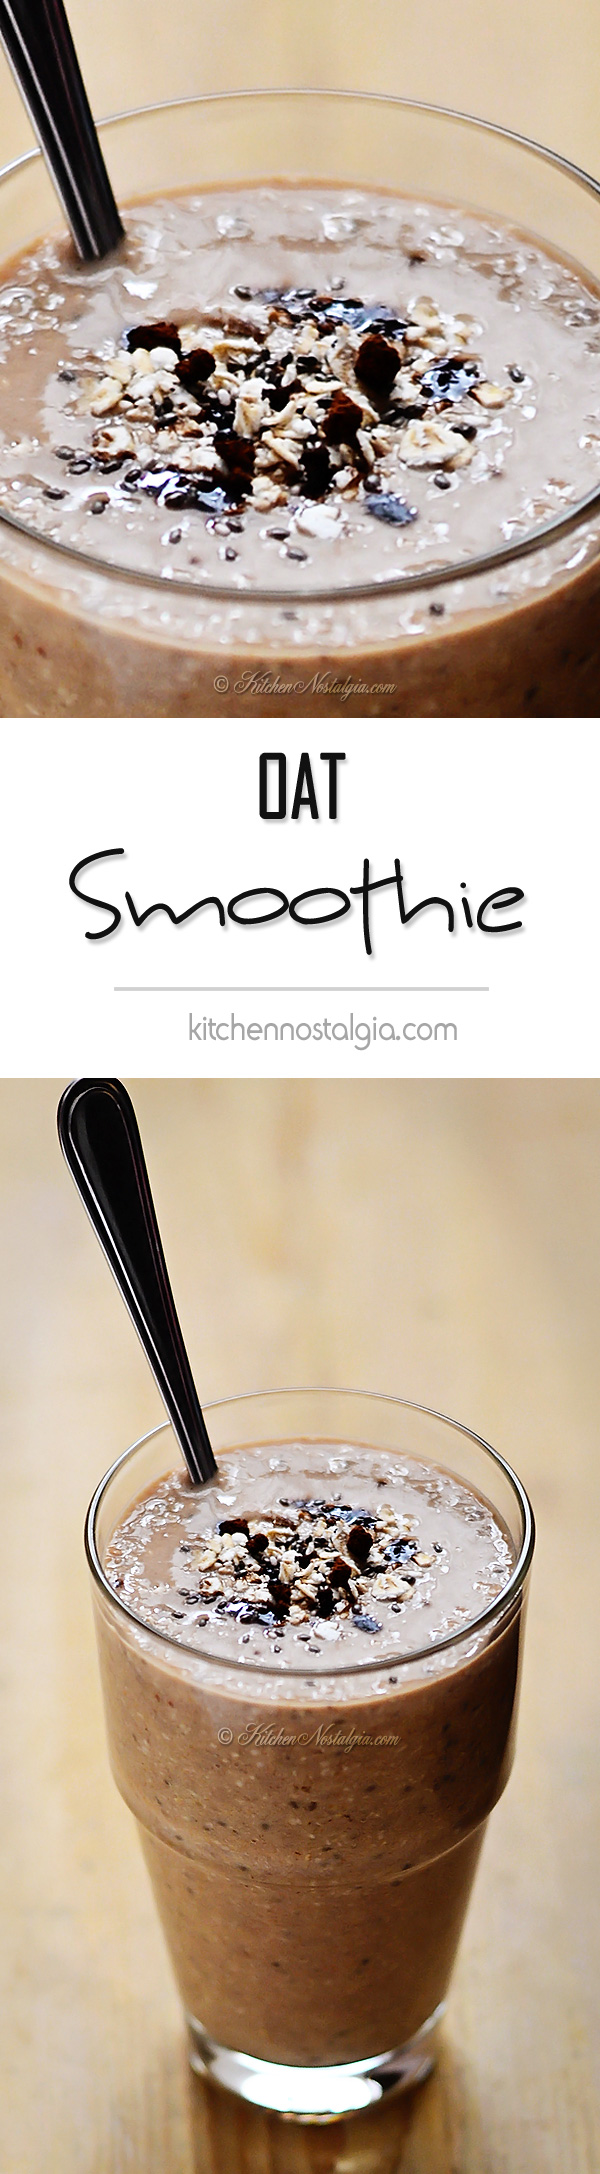 Banana Oat Breakfast Smoothie - kitchennostalgia.com